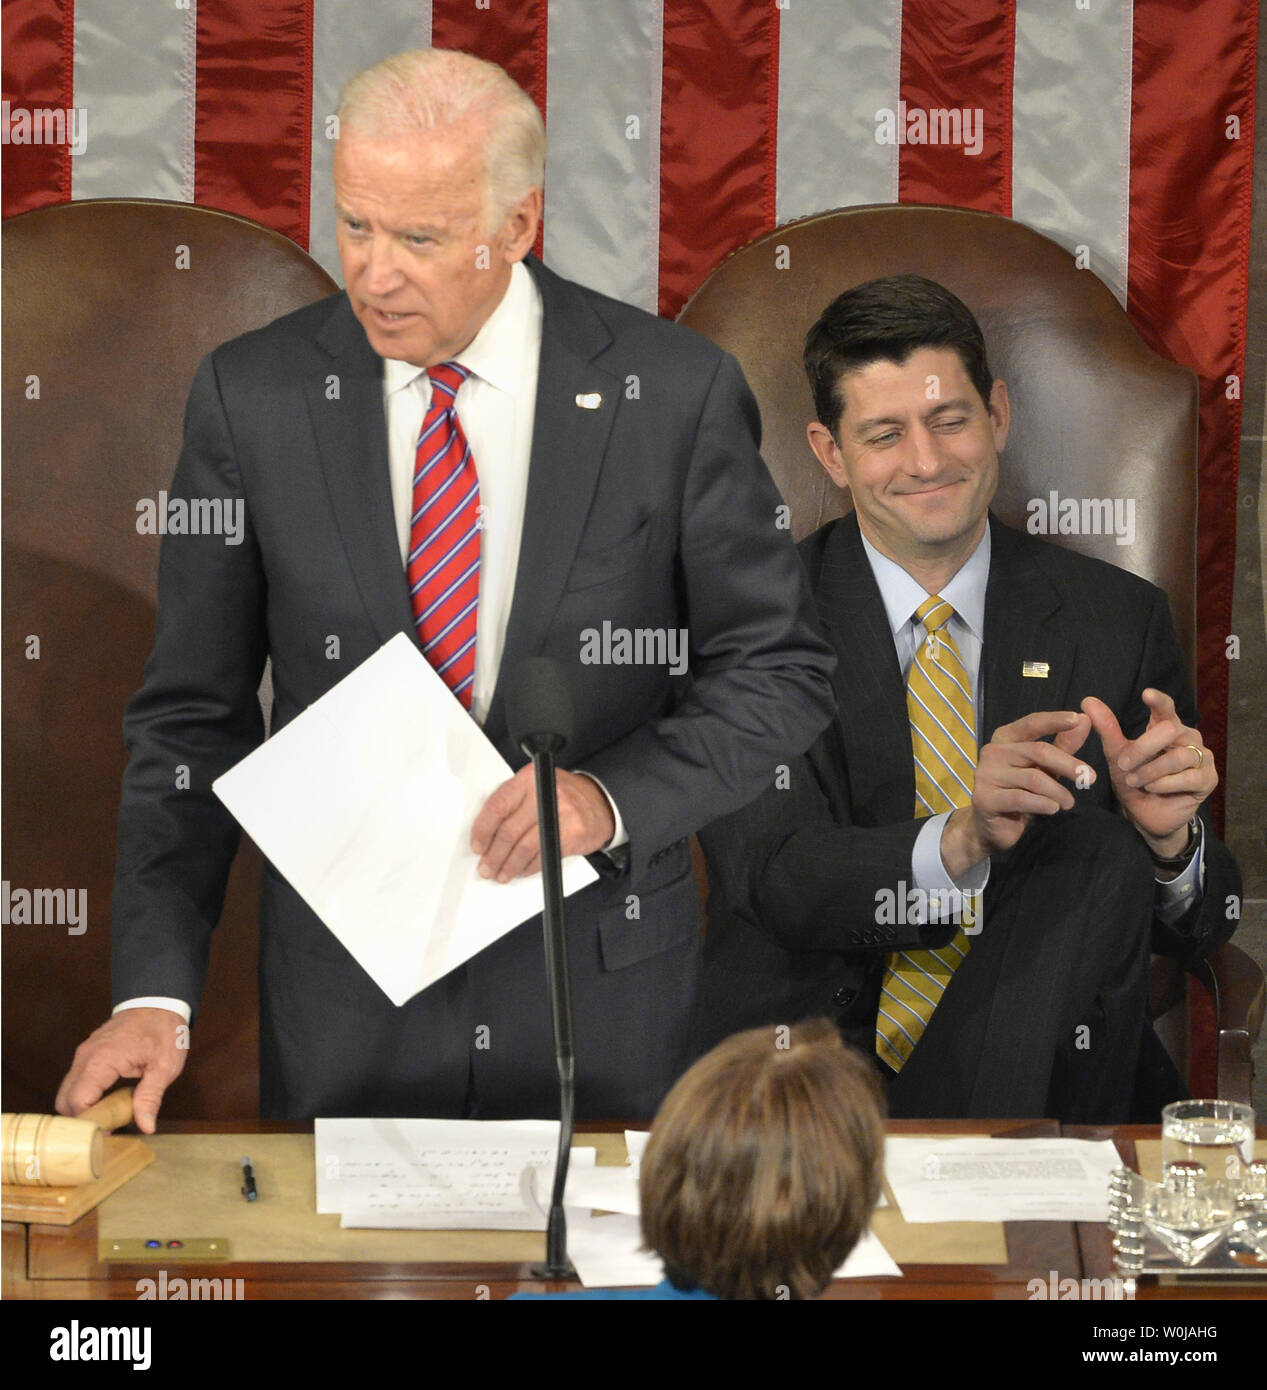 Speaker Paul Ryan (R-WI), (R), gestures during the vote counting for Wisconsin as Vice President Joe Biden presides over the procedure to count and validate the votes of the Electoral College on the floor of the House at the U.S. Capitol, January 6, 2017, in Washington, DC. The procedure, established by the Constitution, finalized Donald J. Trump and Mike Pence as the president and vice president.                 Photo by Mike Theiler/UPI - Stock Image